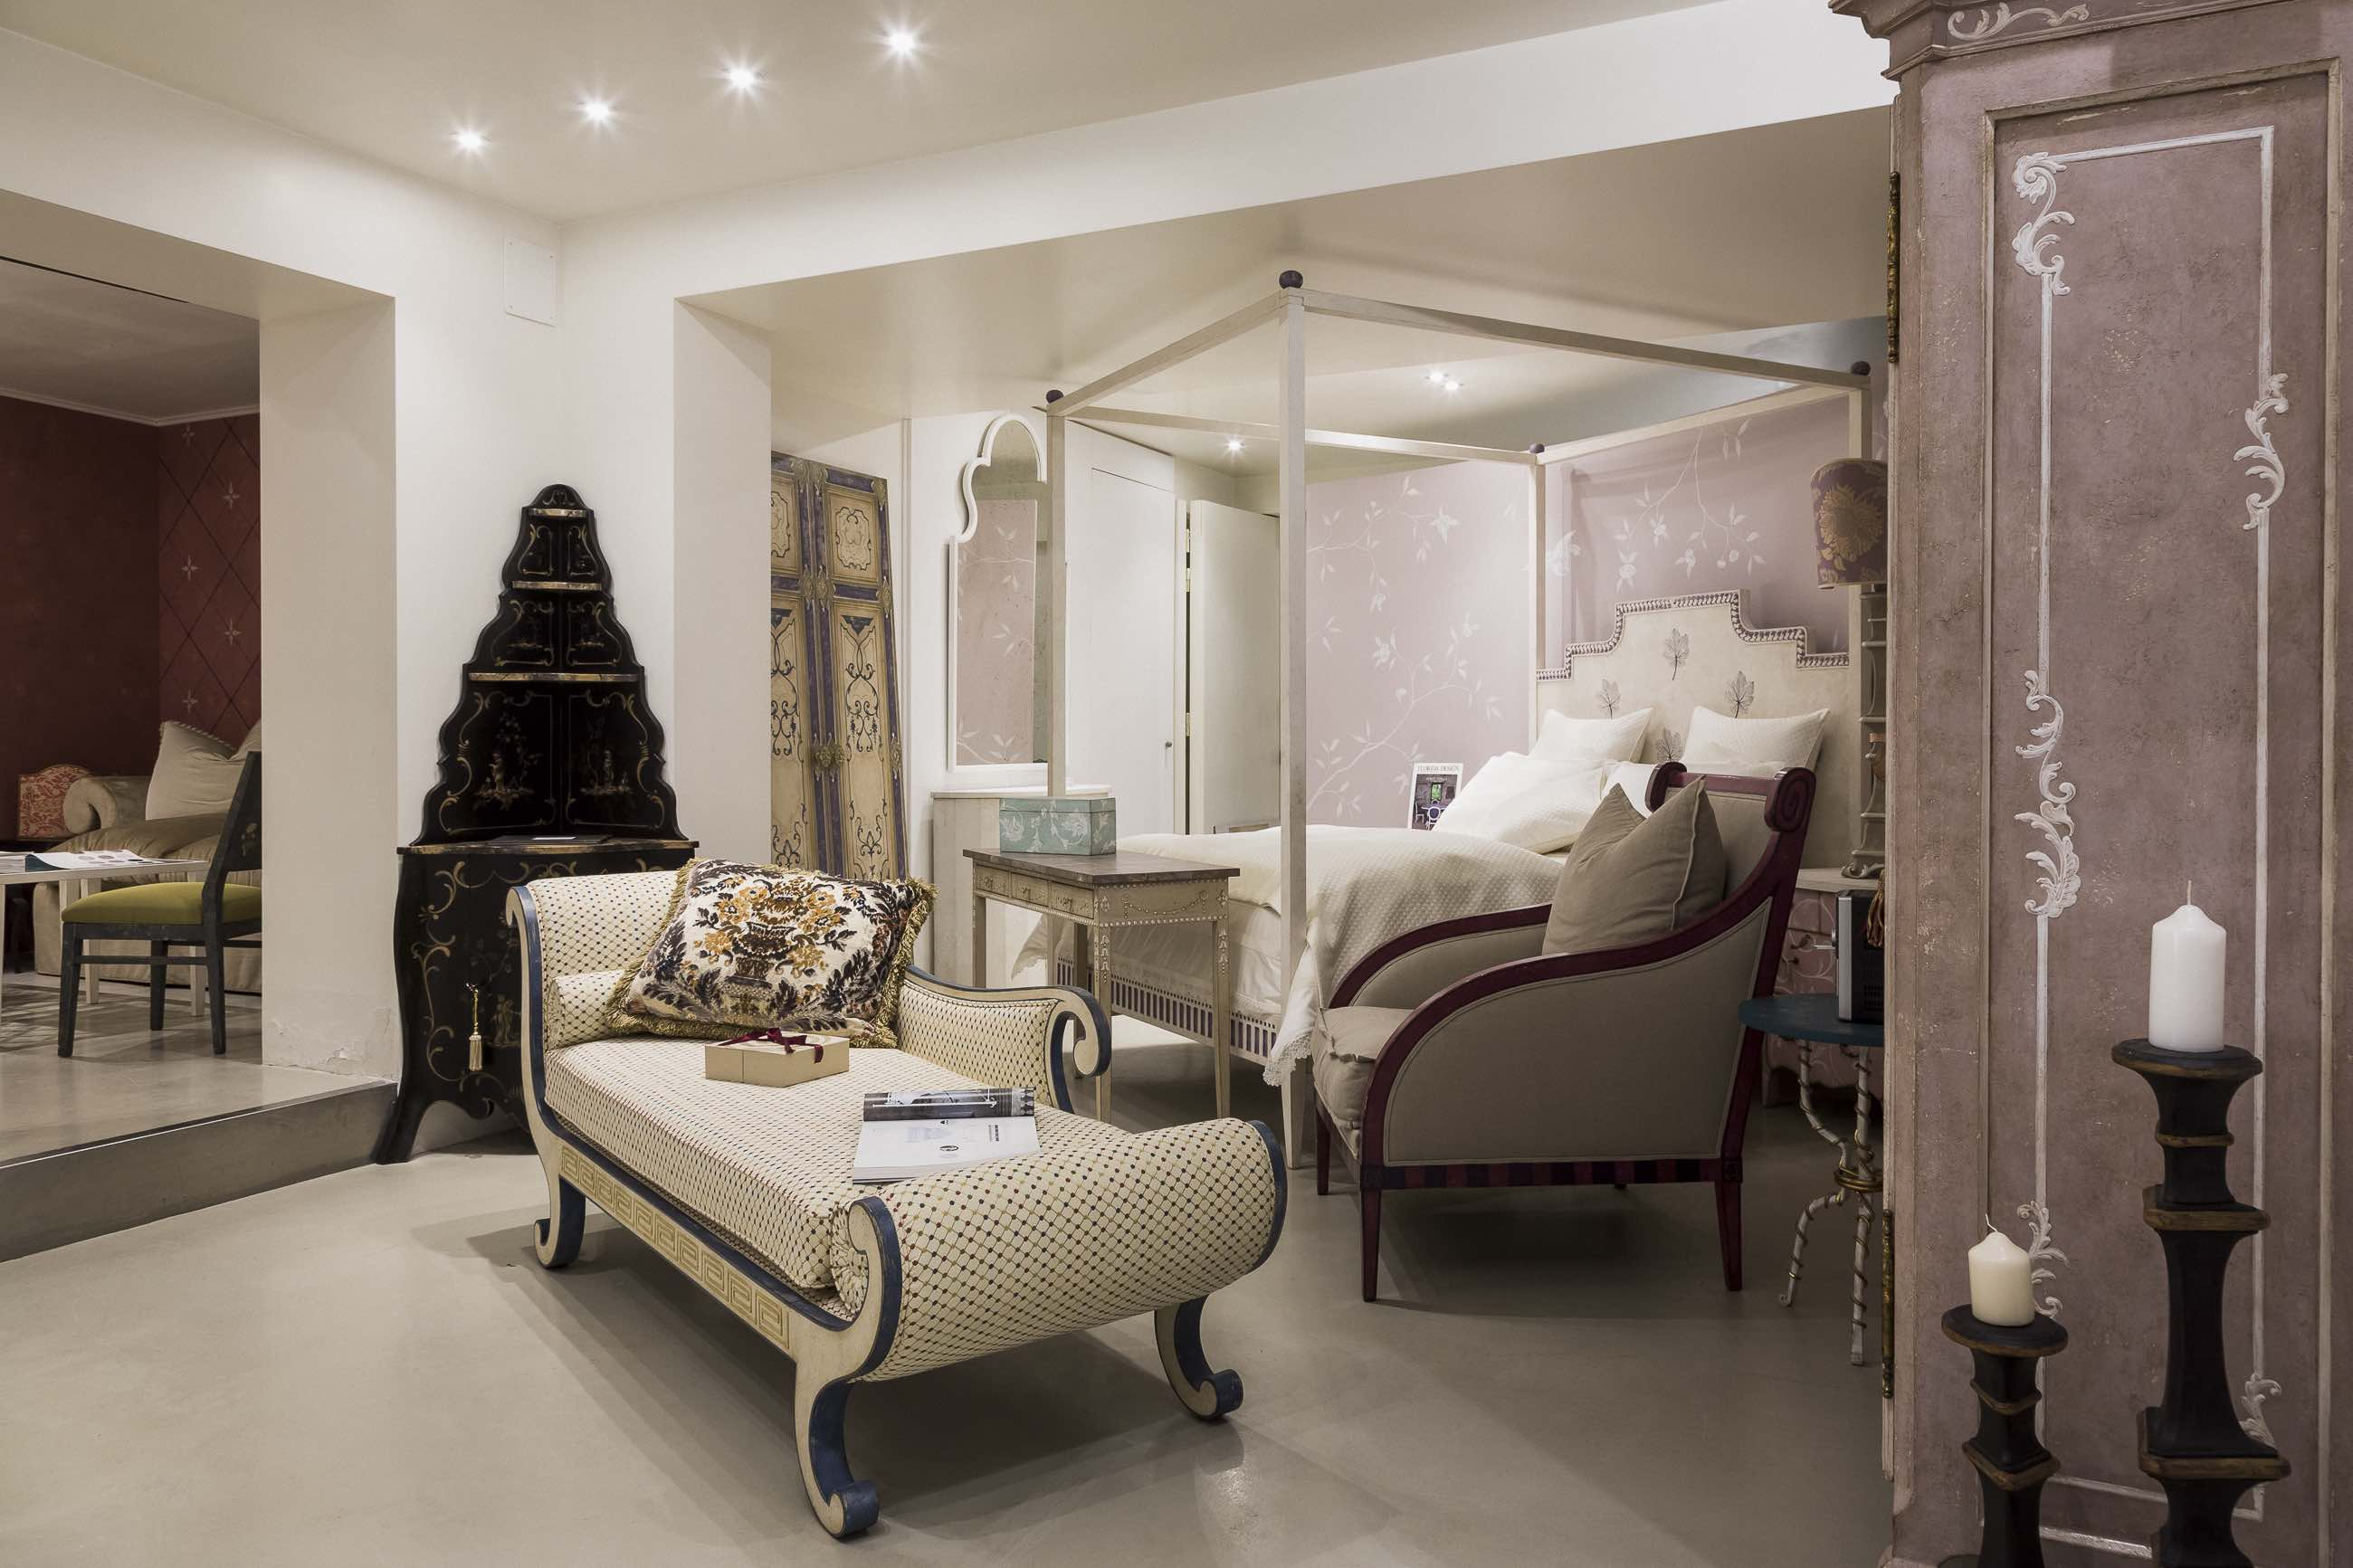 Porte Italia Interiors New Opening In Venice Design Contract Target Network For And Furniture Focusing On The Hospitality Service Sector